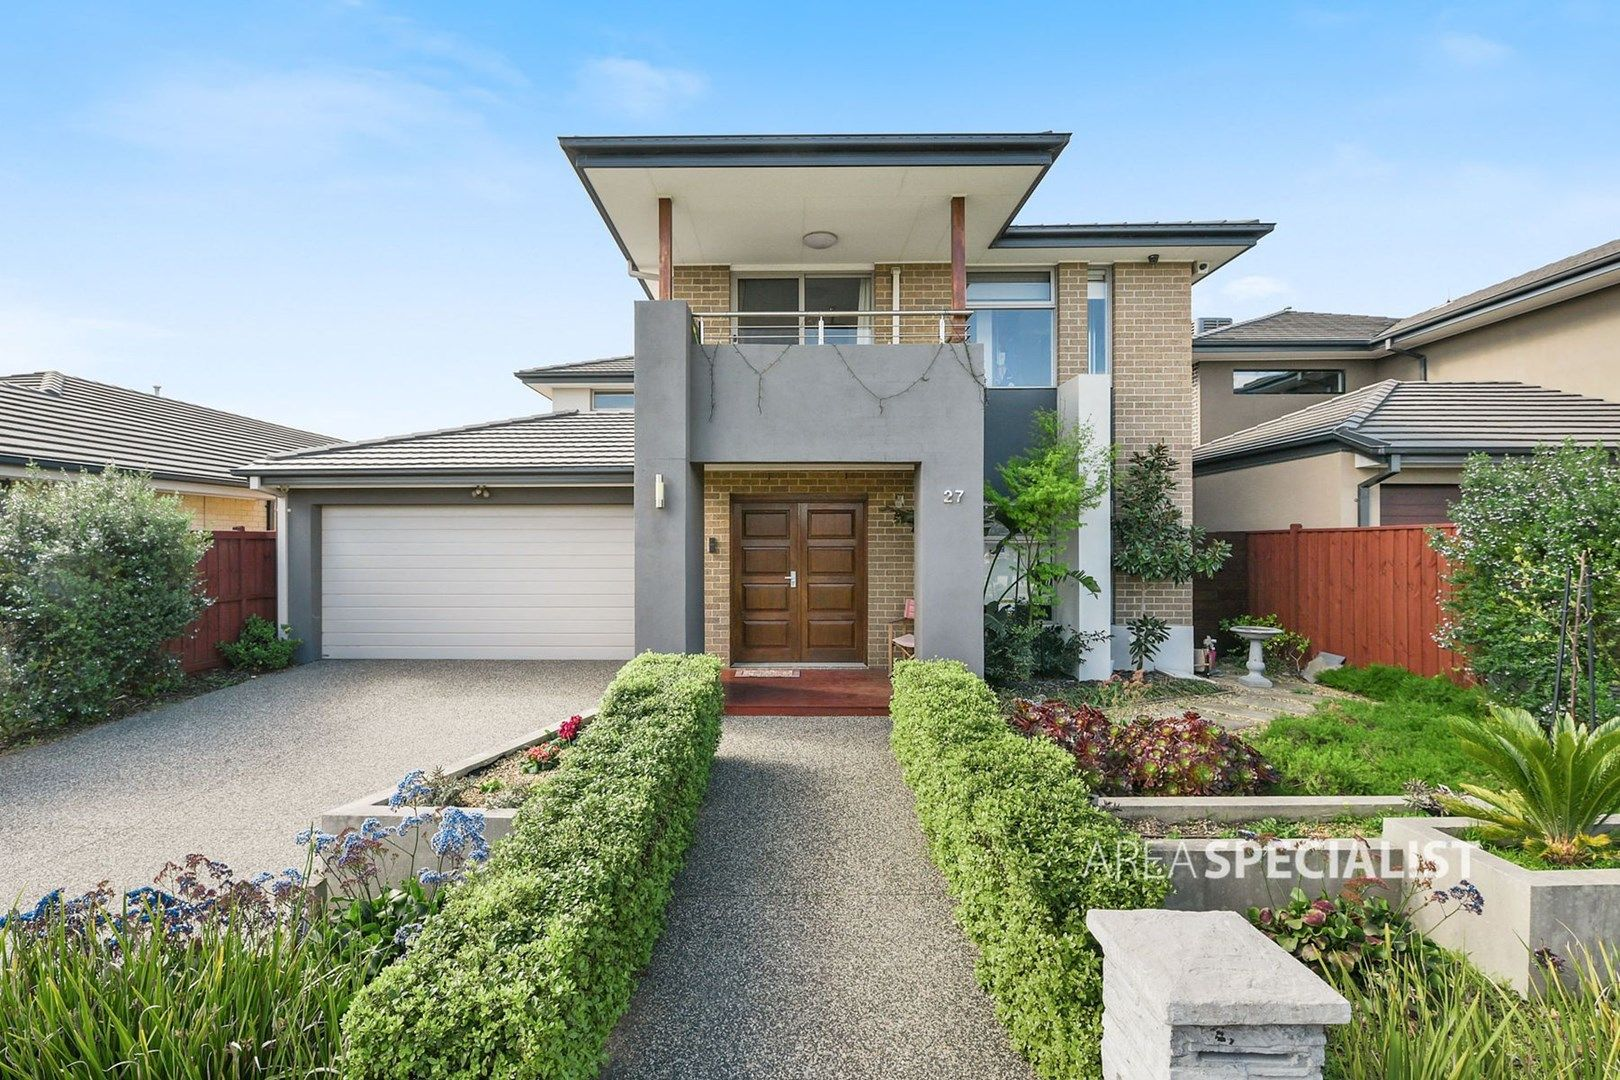 27 Weston Street, Keysborough VIC 3173, Image 0